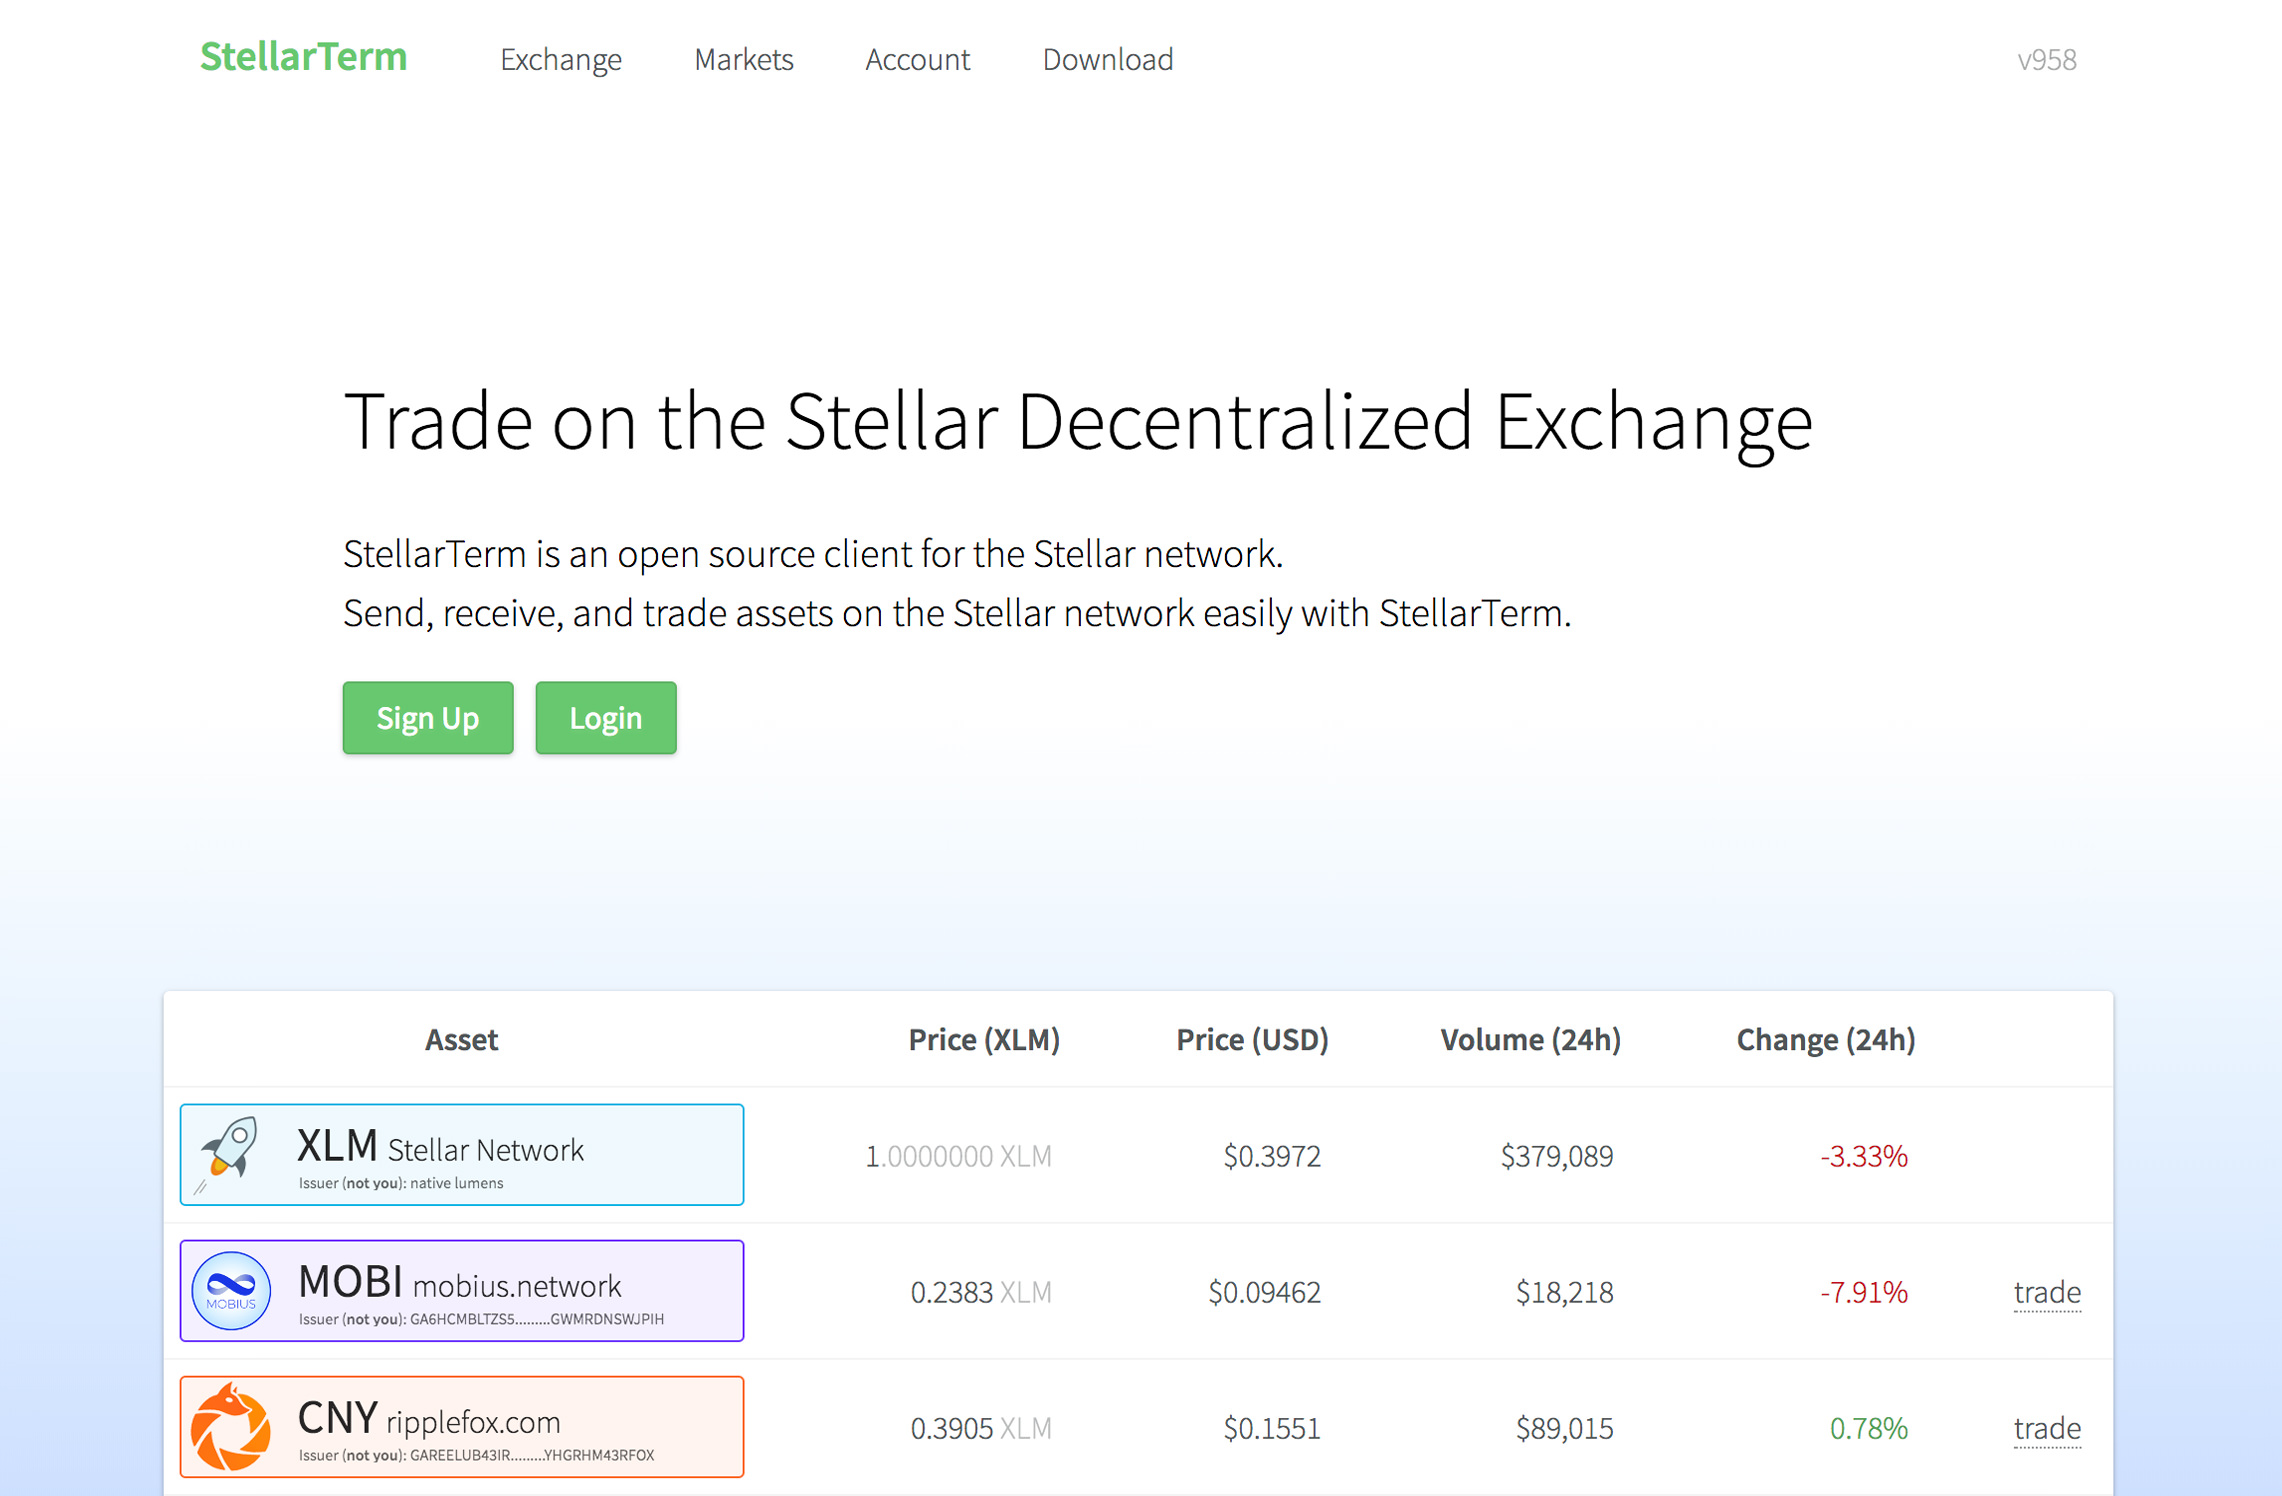 stellarterm stellar decentralized exchange user interface